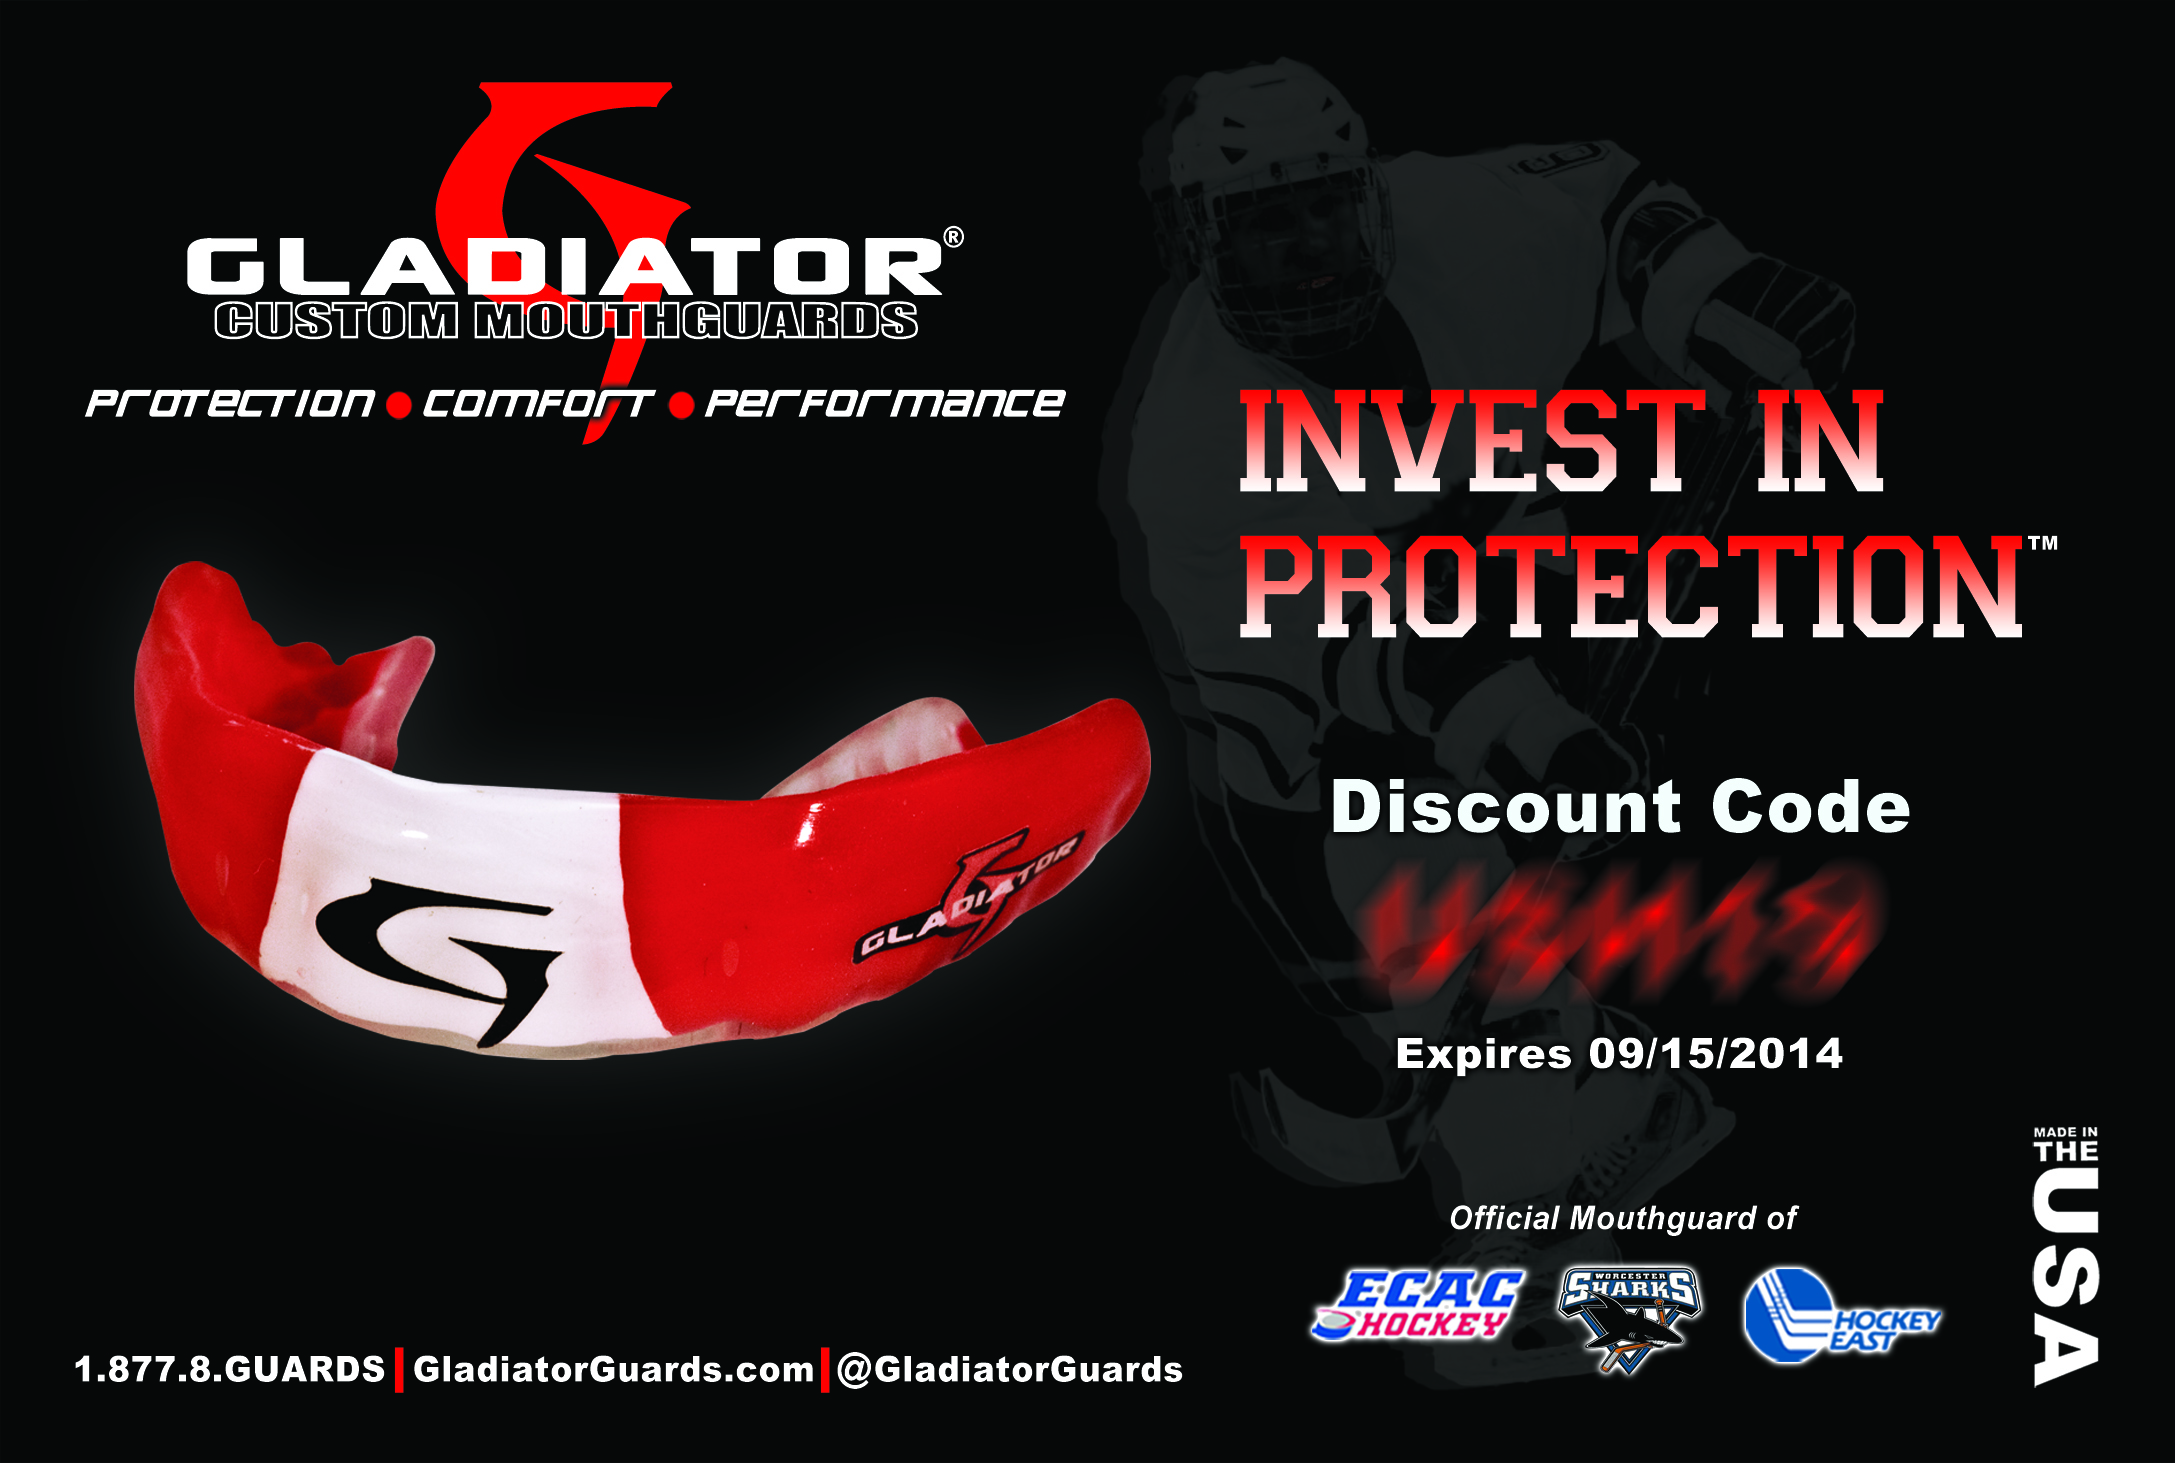 Gladiator Custom Mouthguards